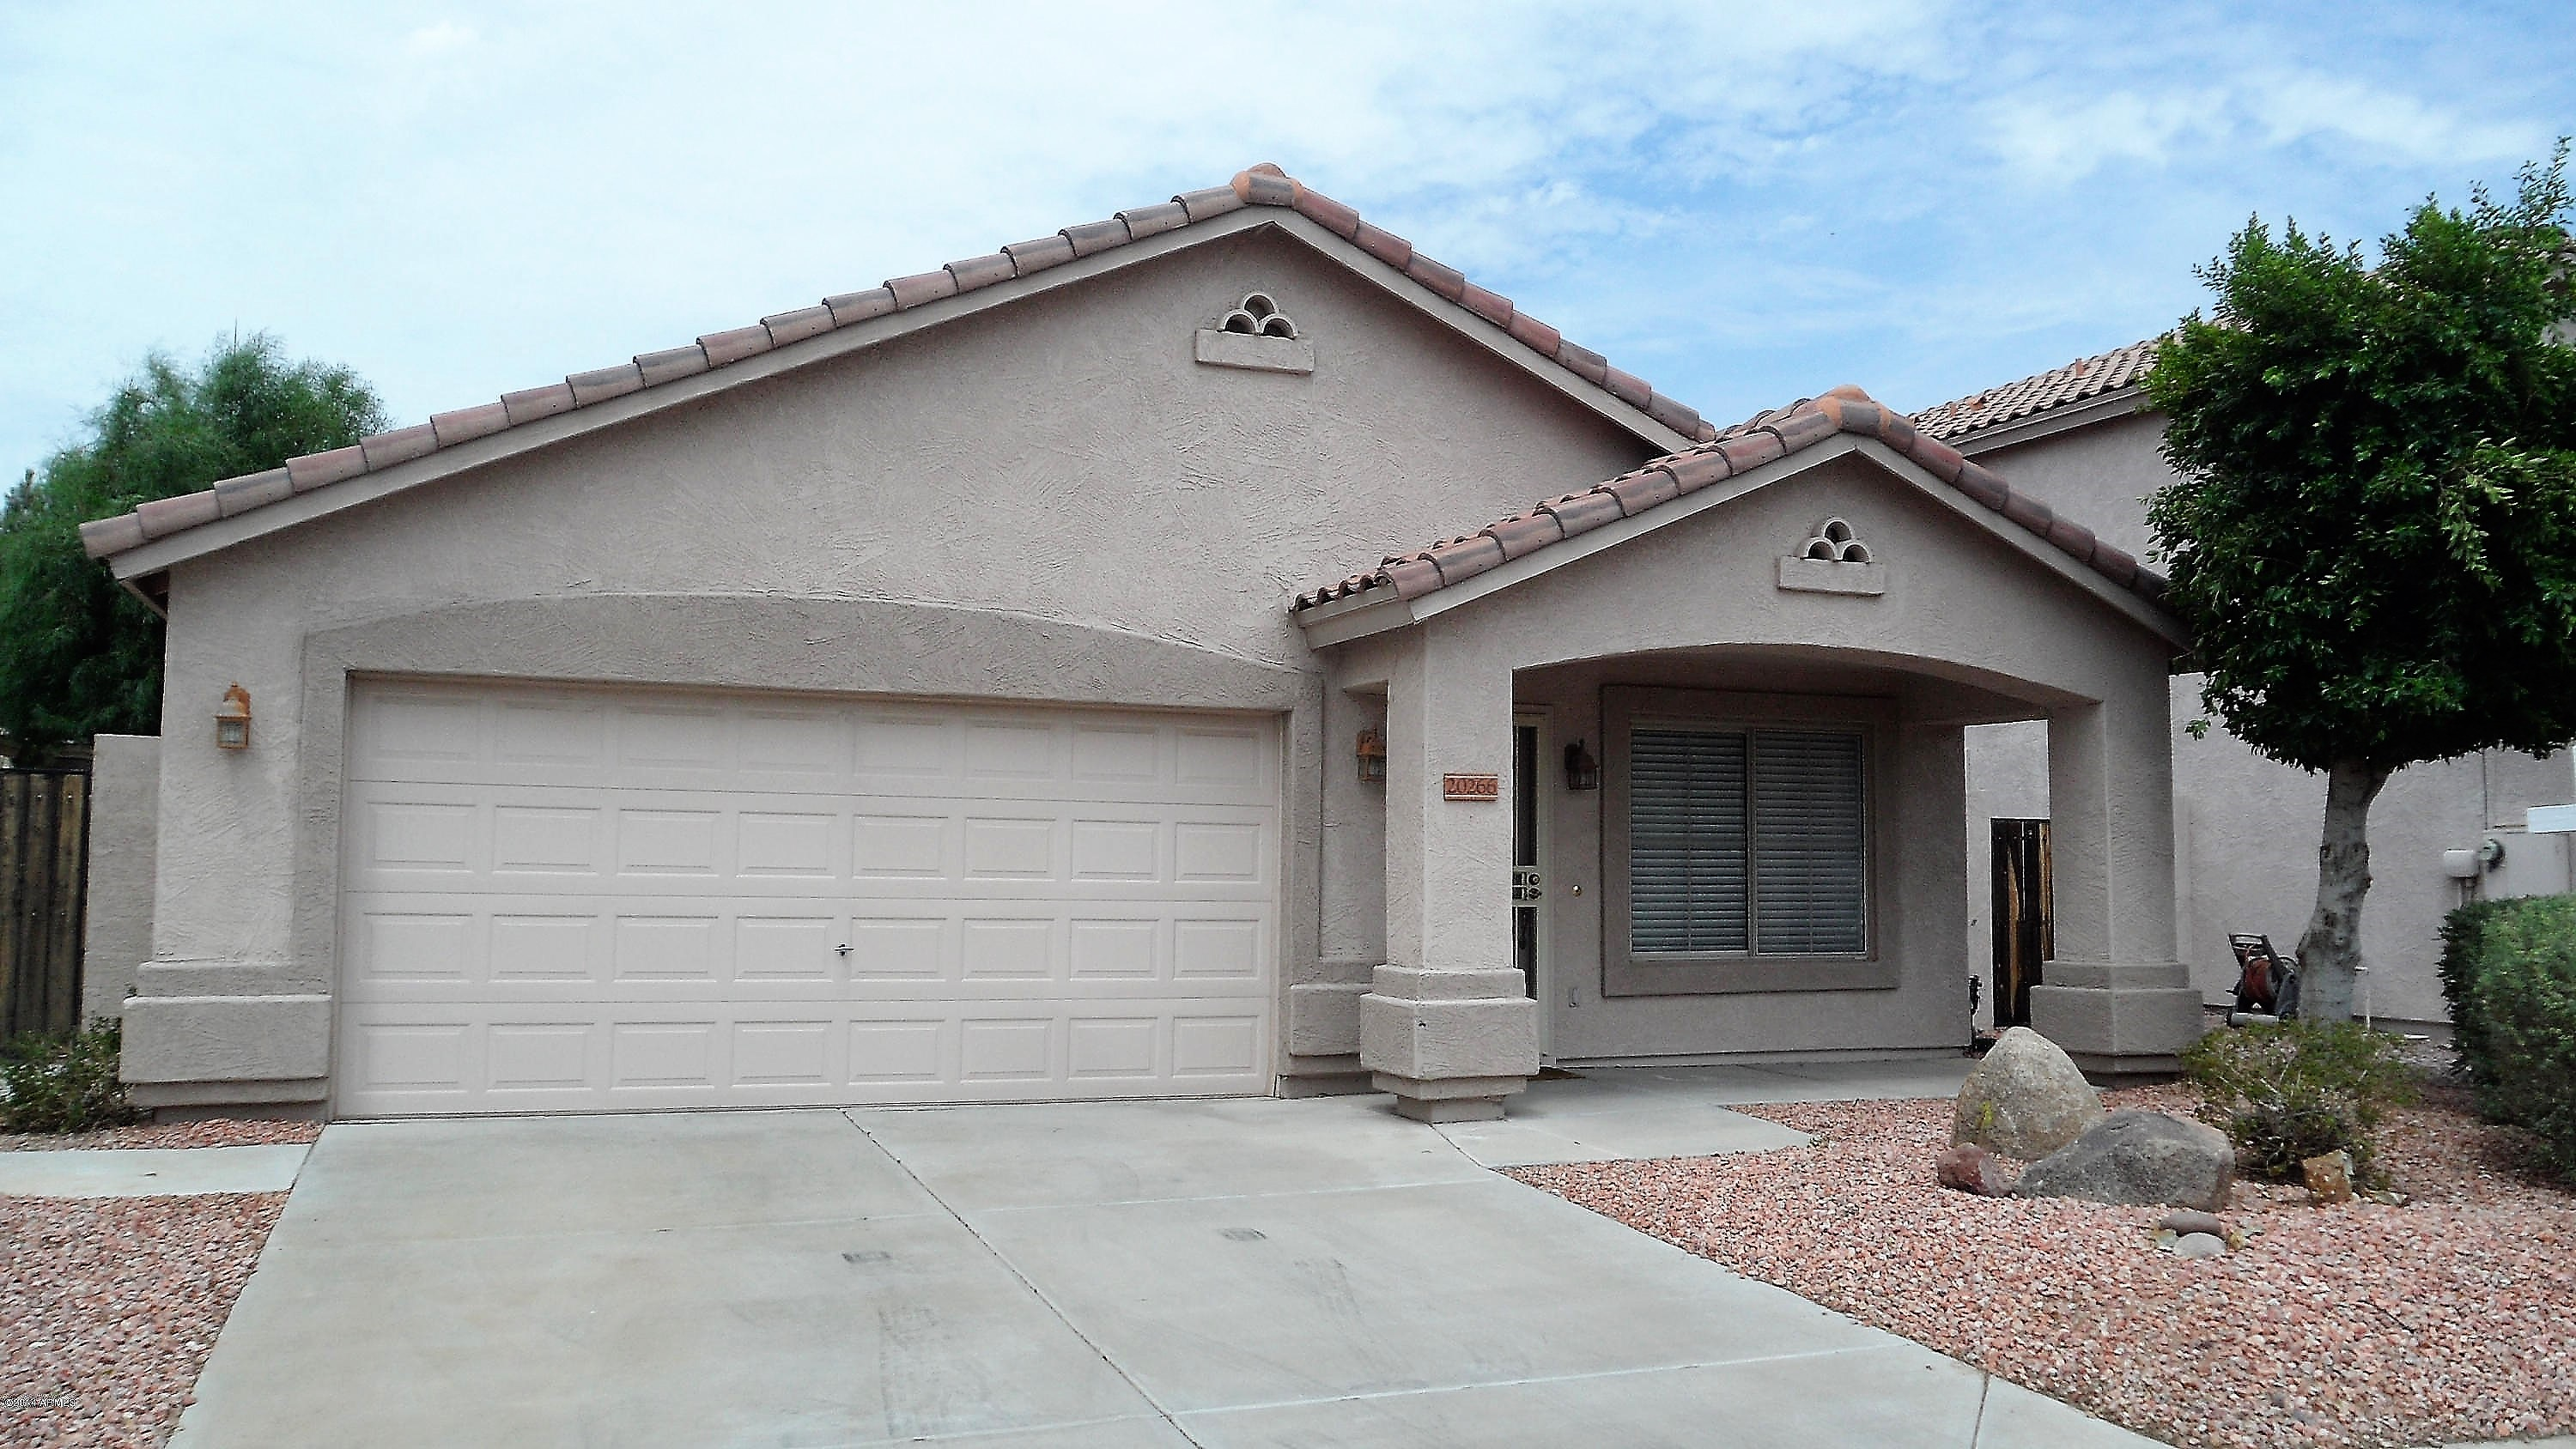 renovated off market home coming soon in glendale az